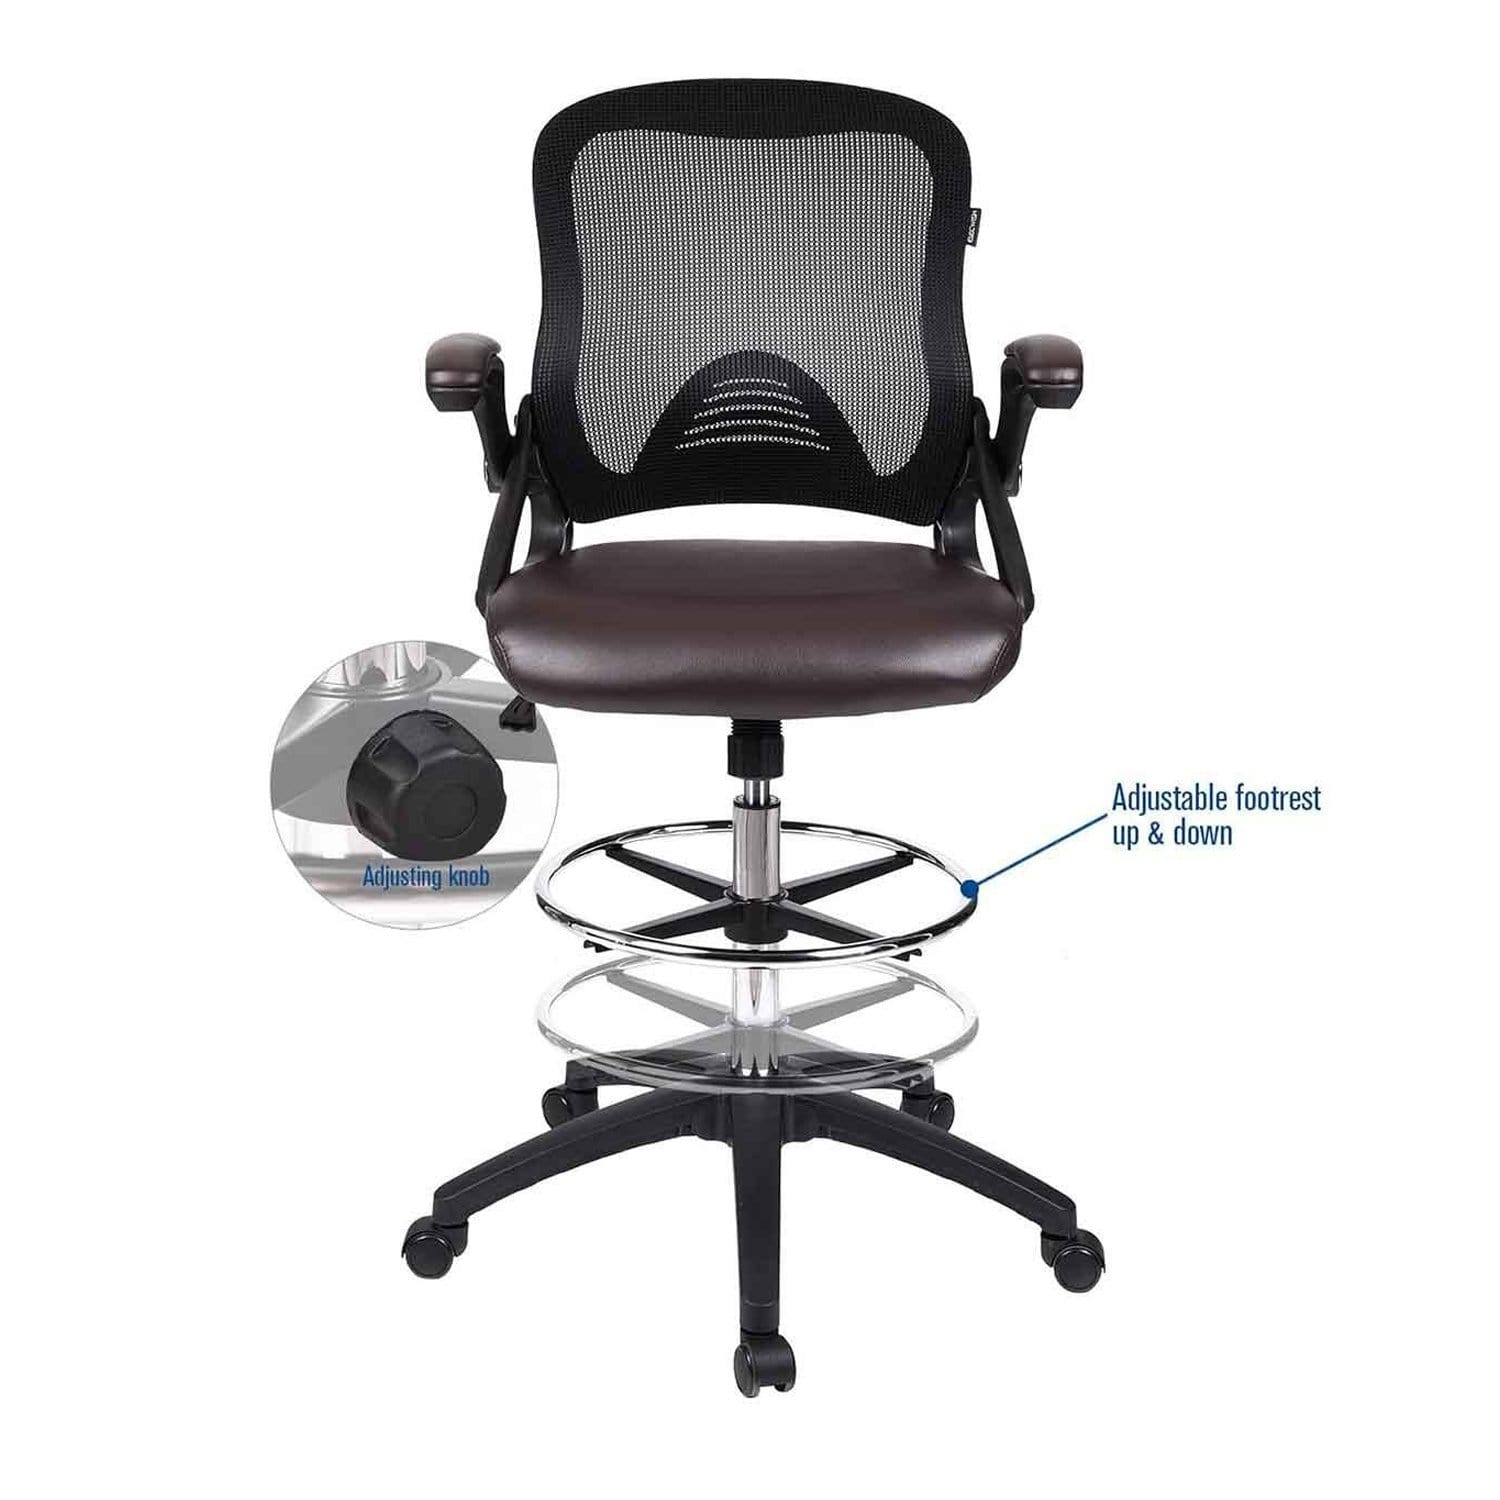 ELECWISH Drafting Chair